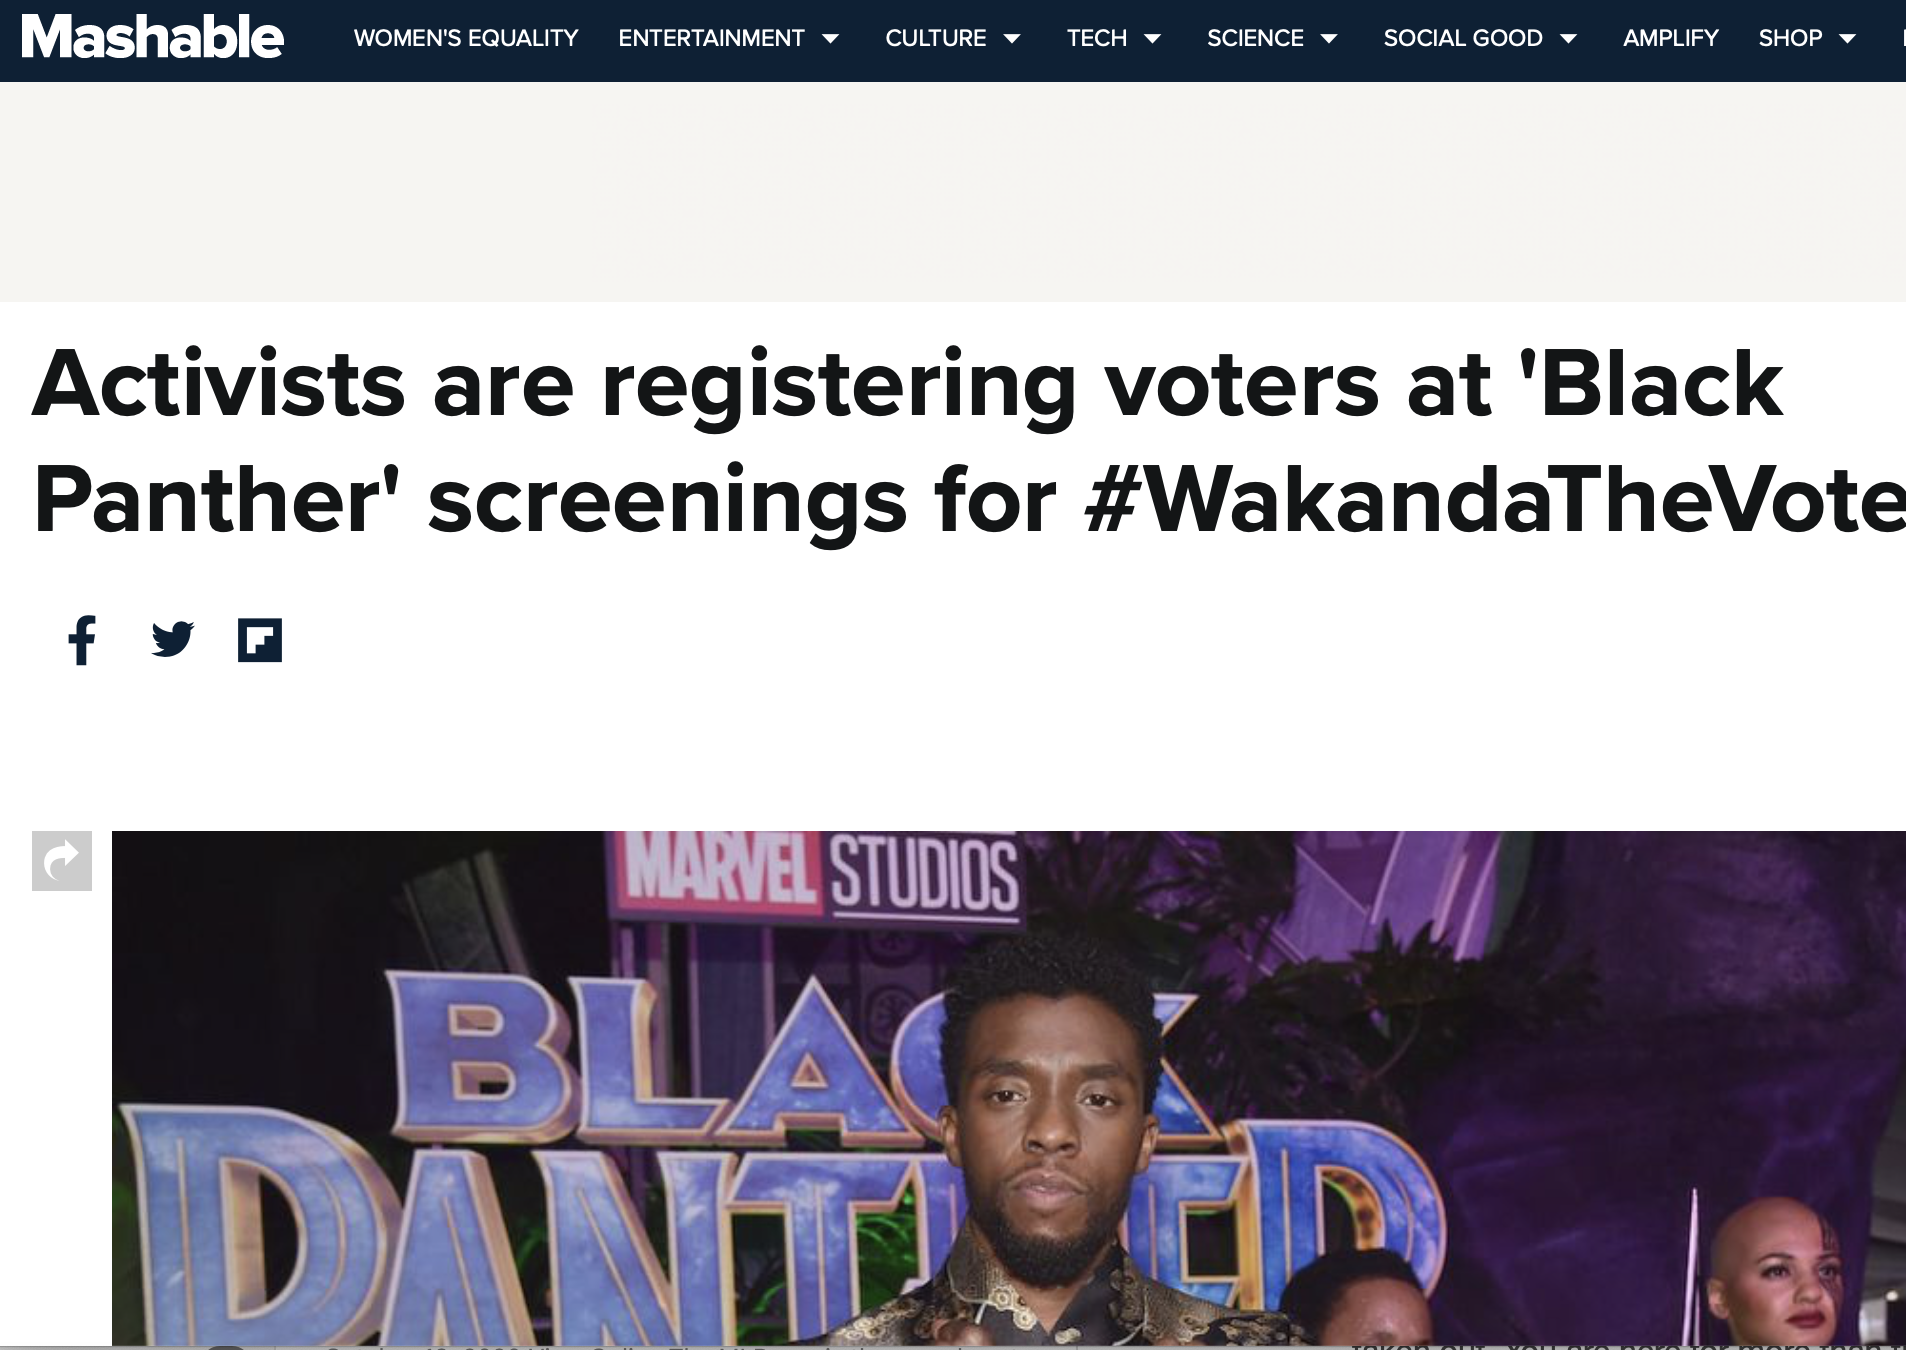 Activists are registering voters at 'Black Panther' screenings for #WakandaTheVote